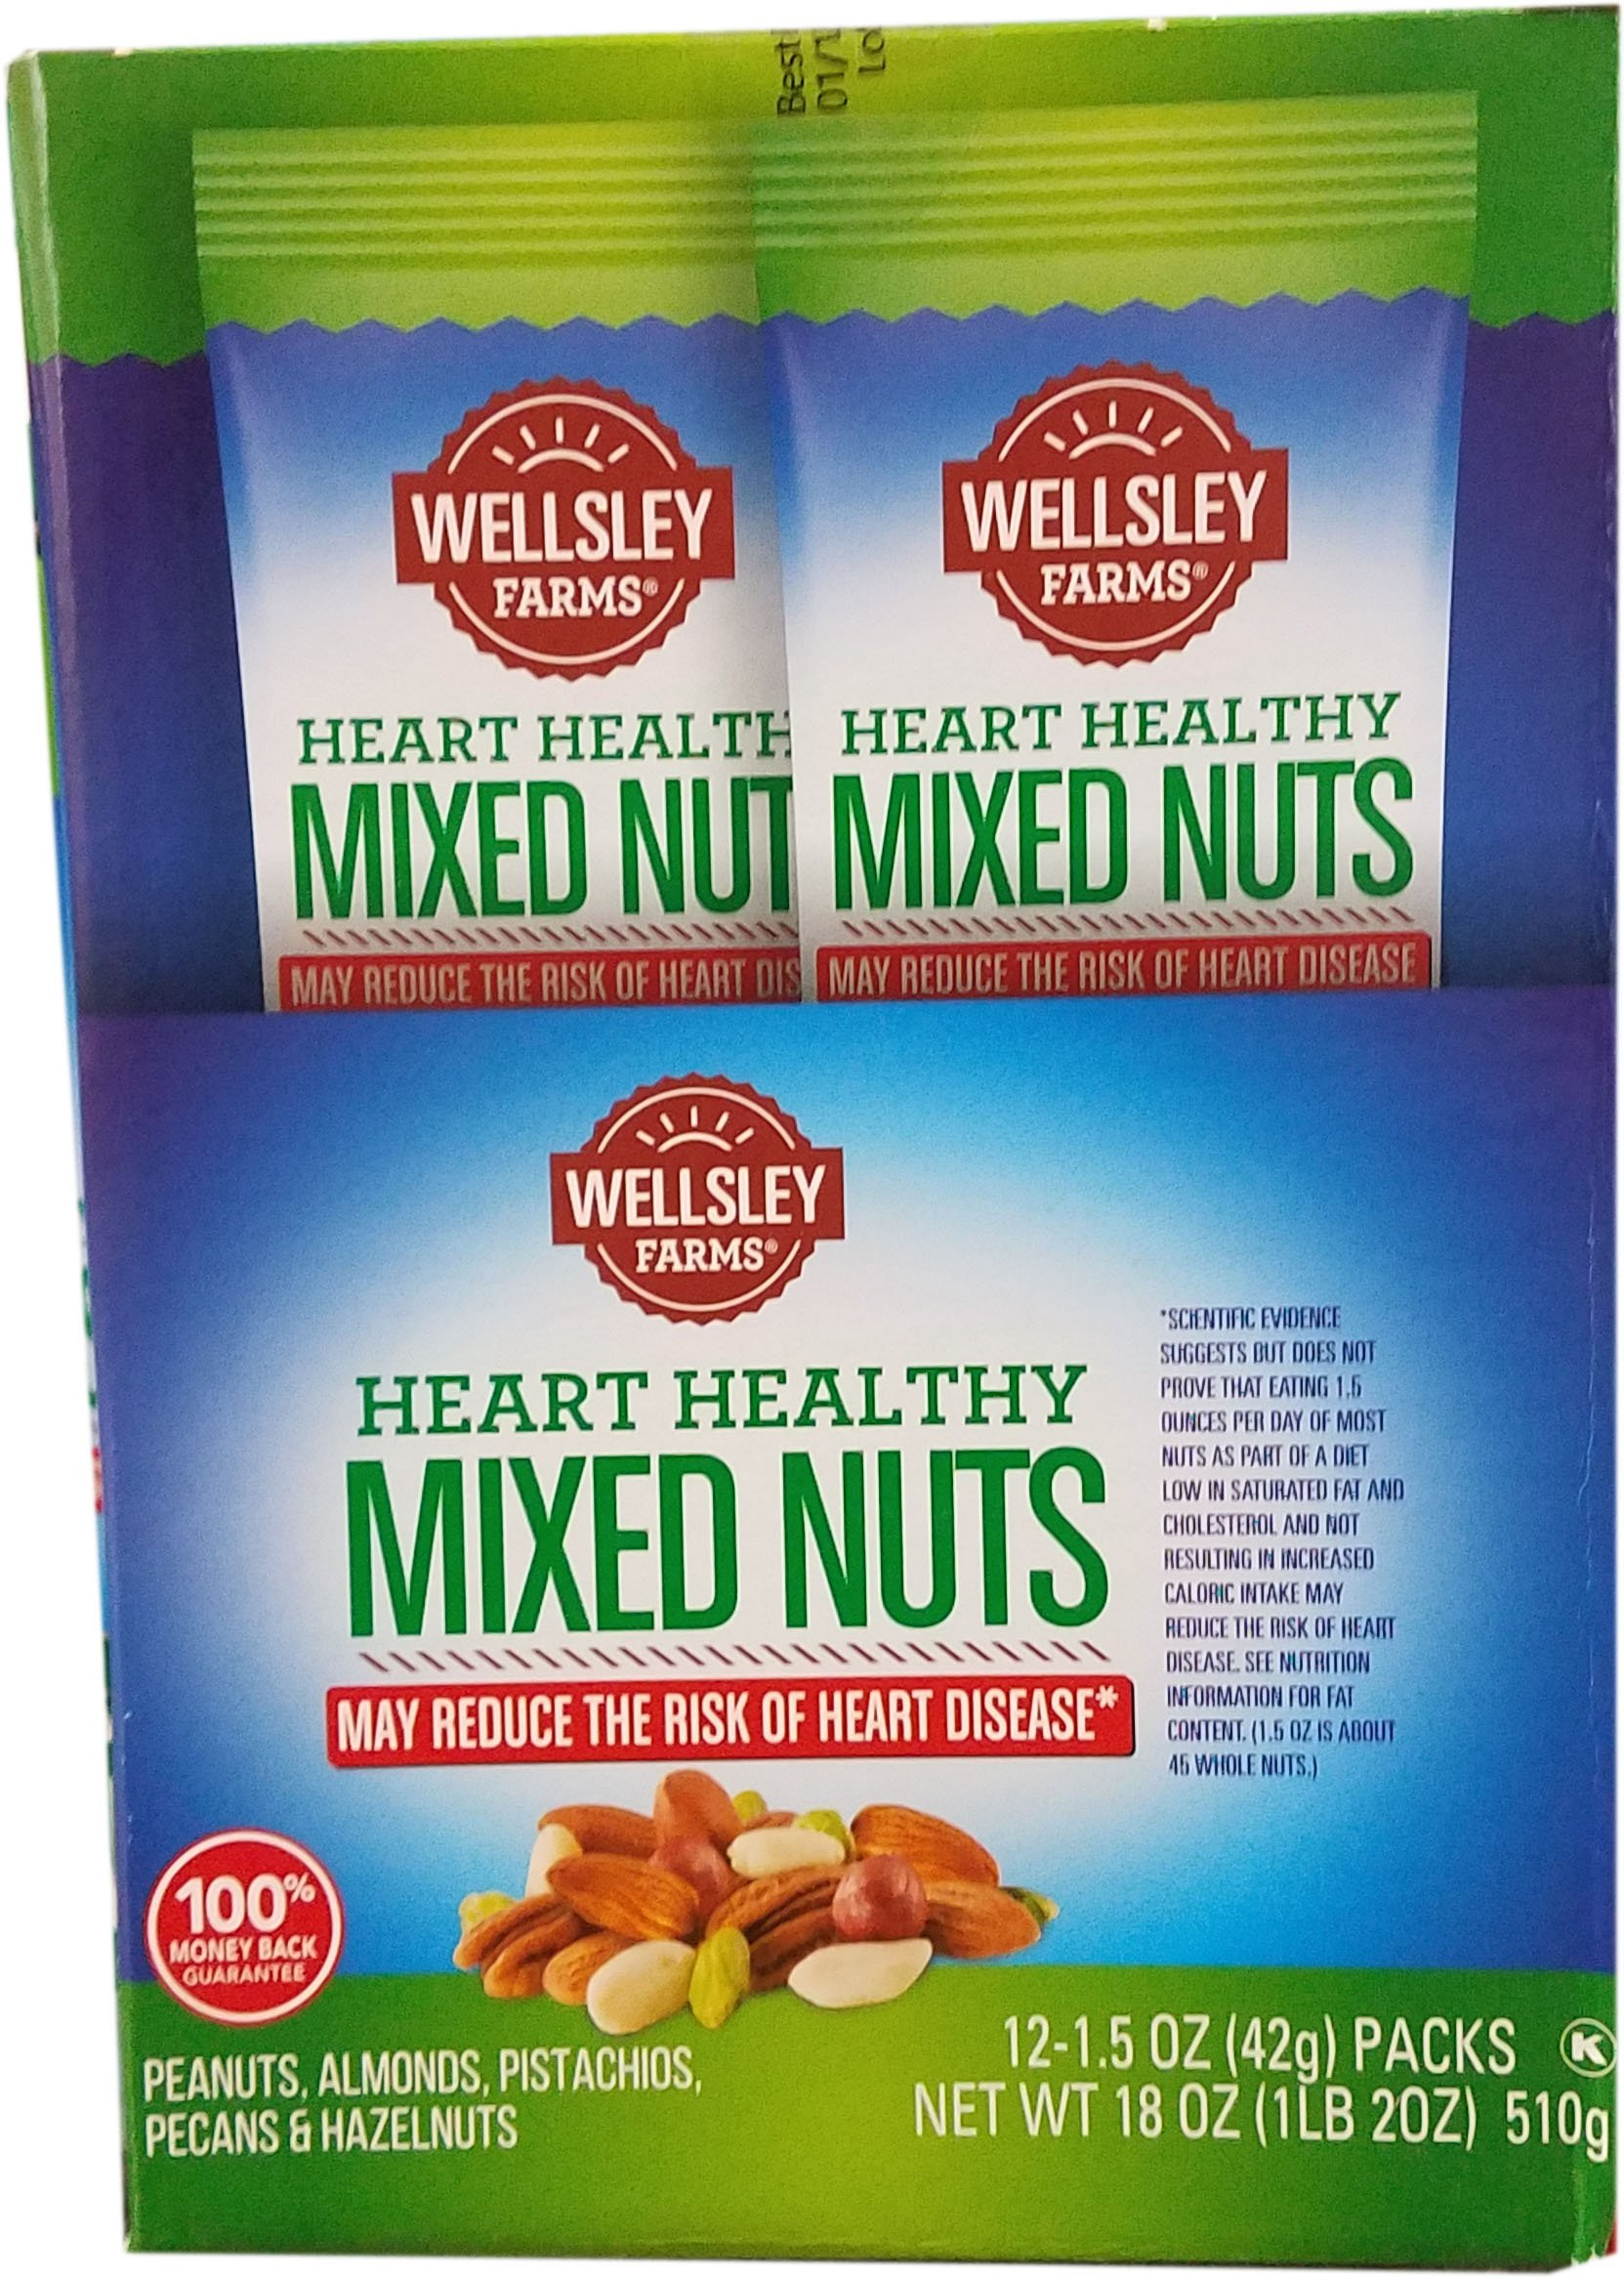 WELLSLEY FARMS HEART HEALTHY MIXED NUTS 12 -1.5 OZ PACK by Wellsley Farms